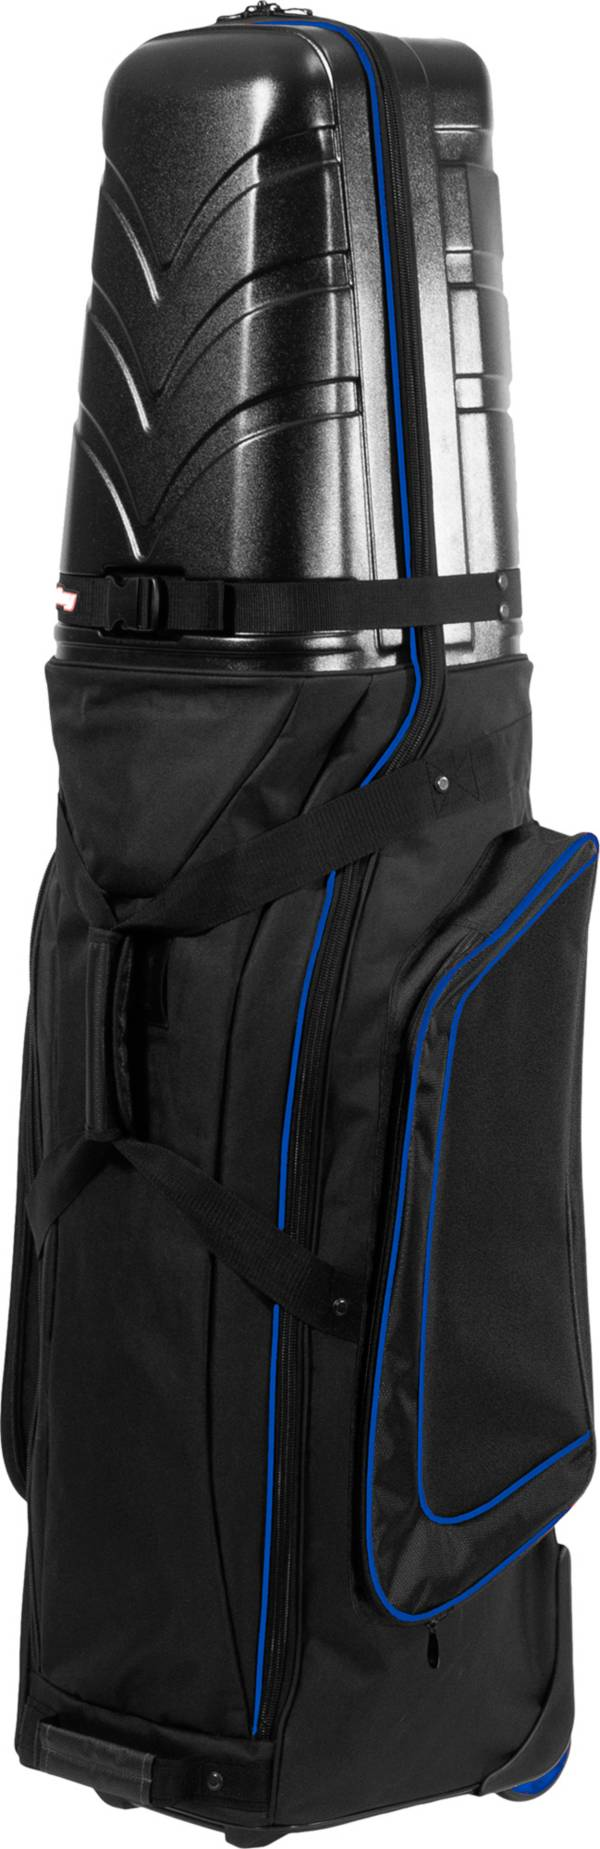 Bag Boy 2021 T-10 Hard Top Travel Cover product image